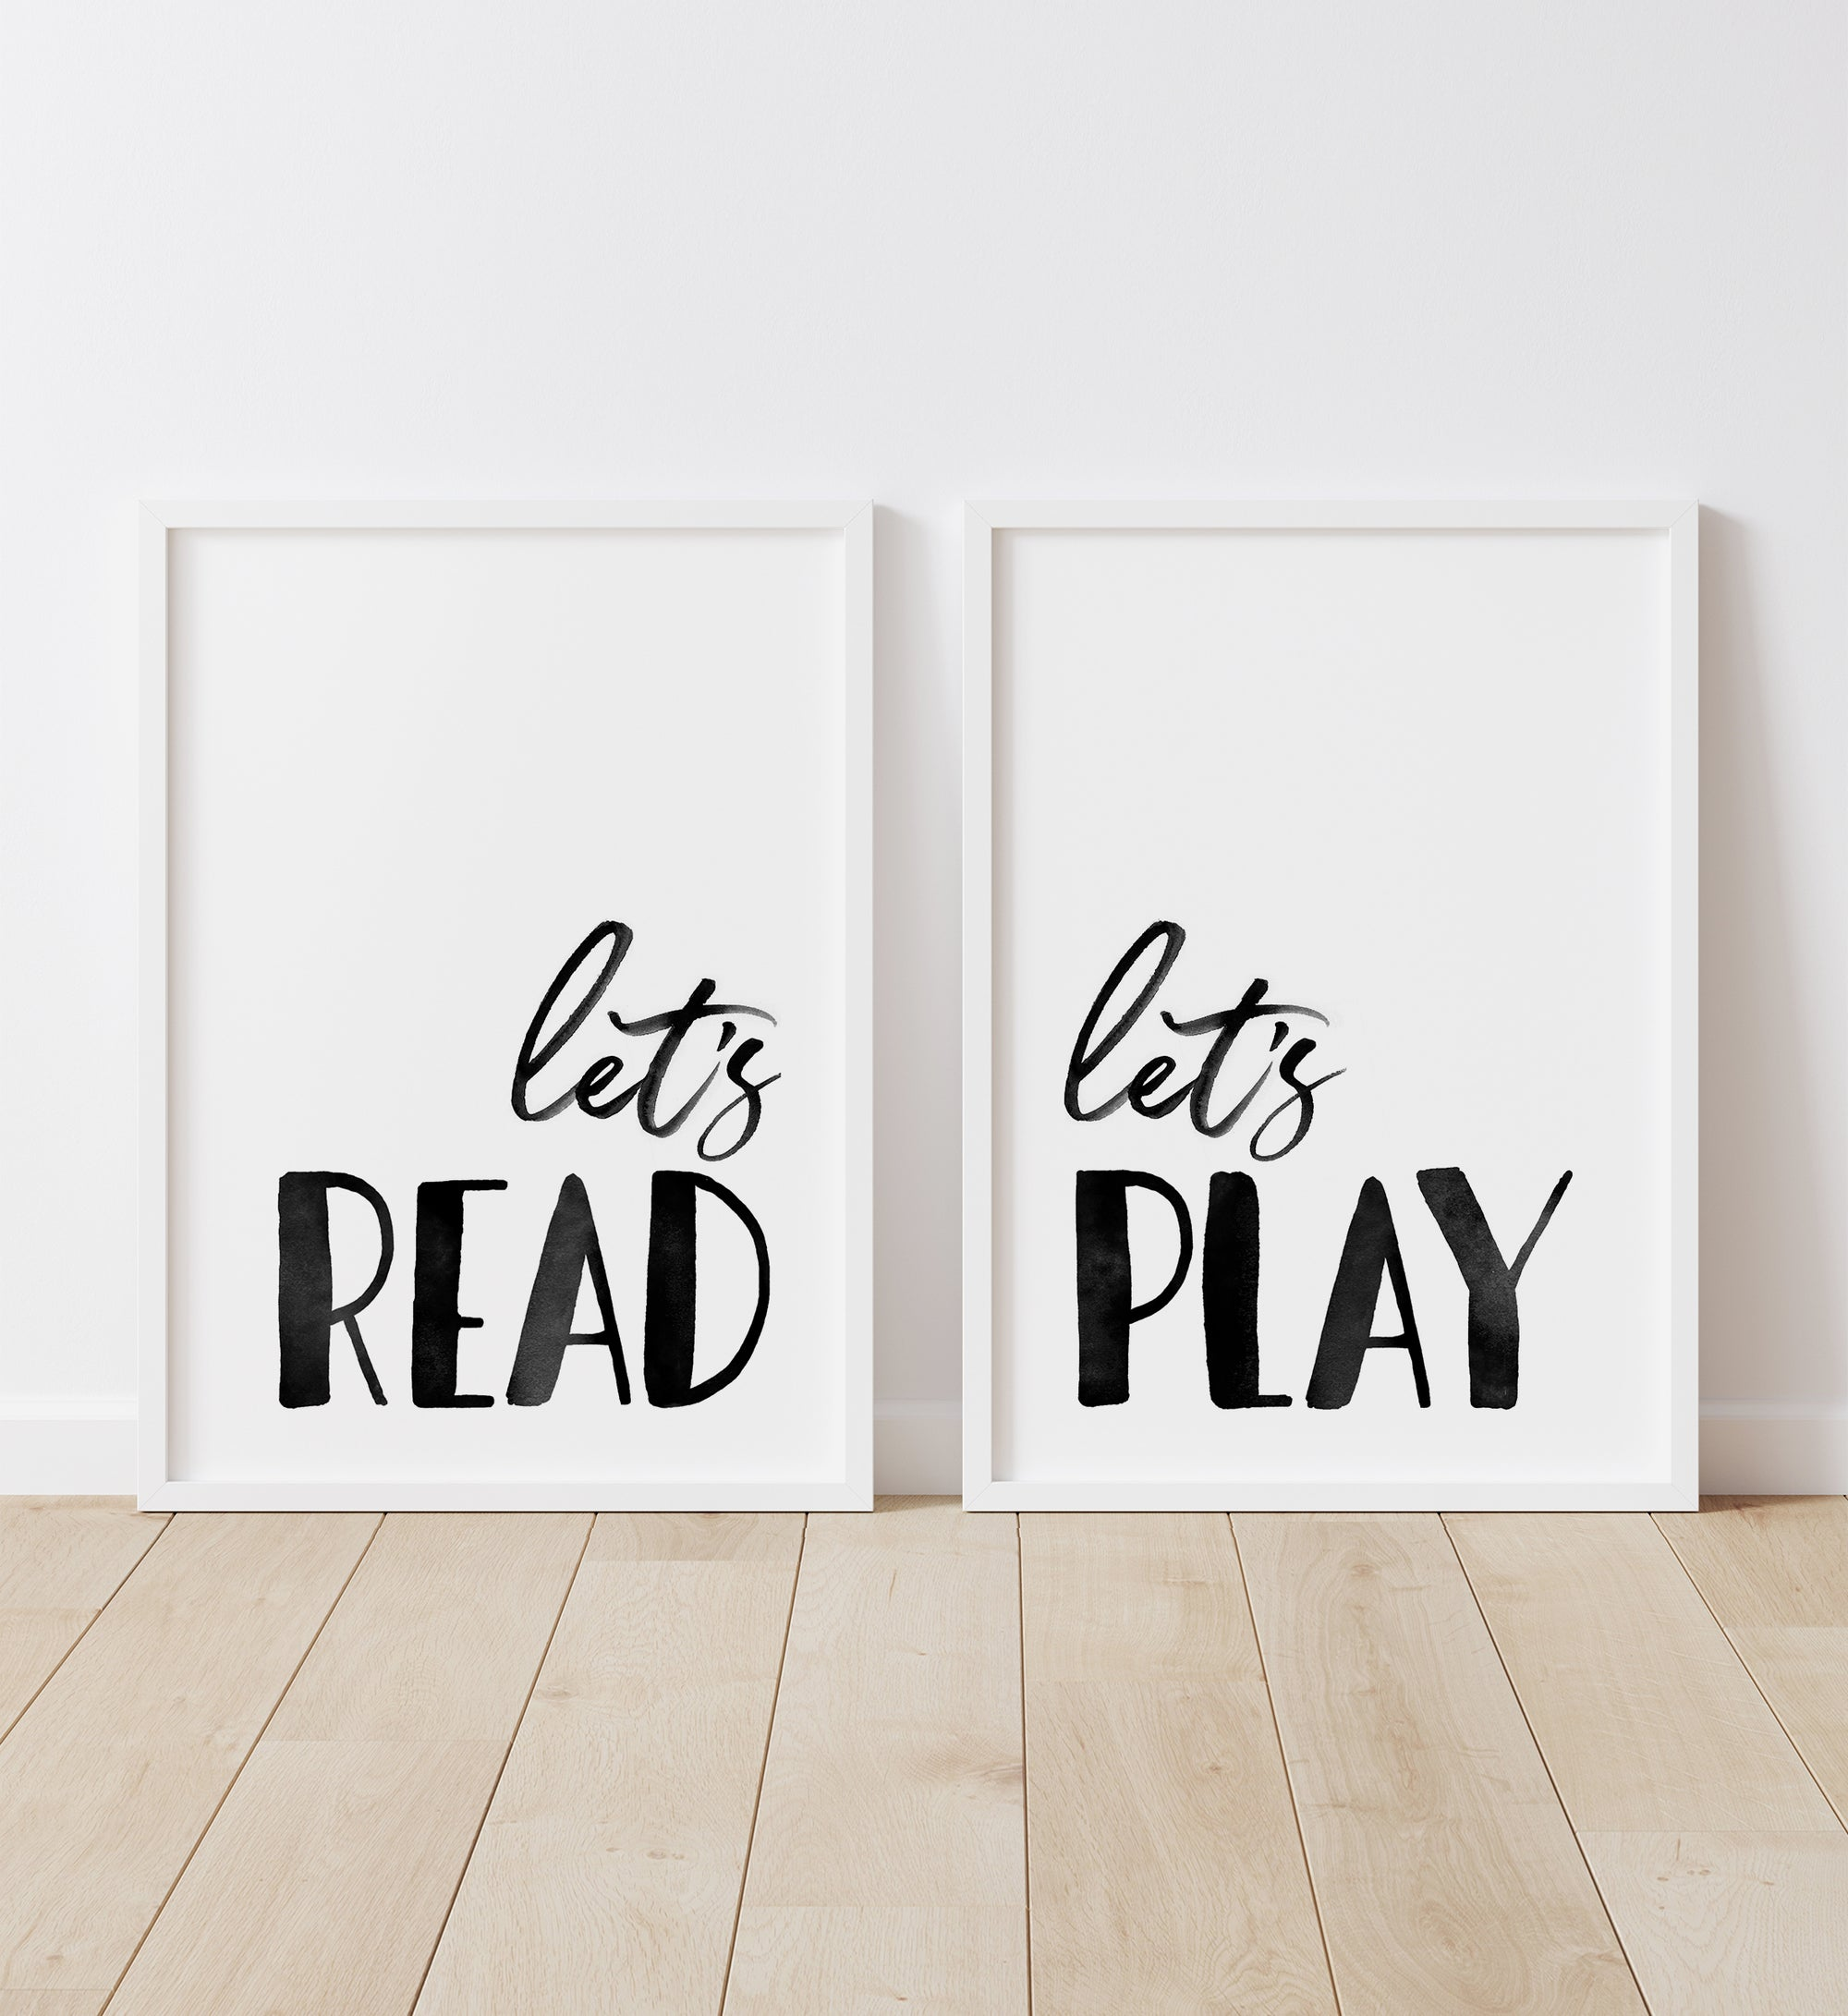 Let's Read, Let's Play - Black